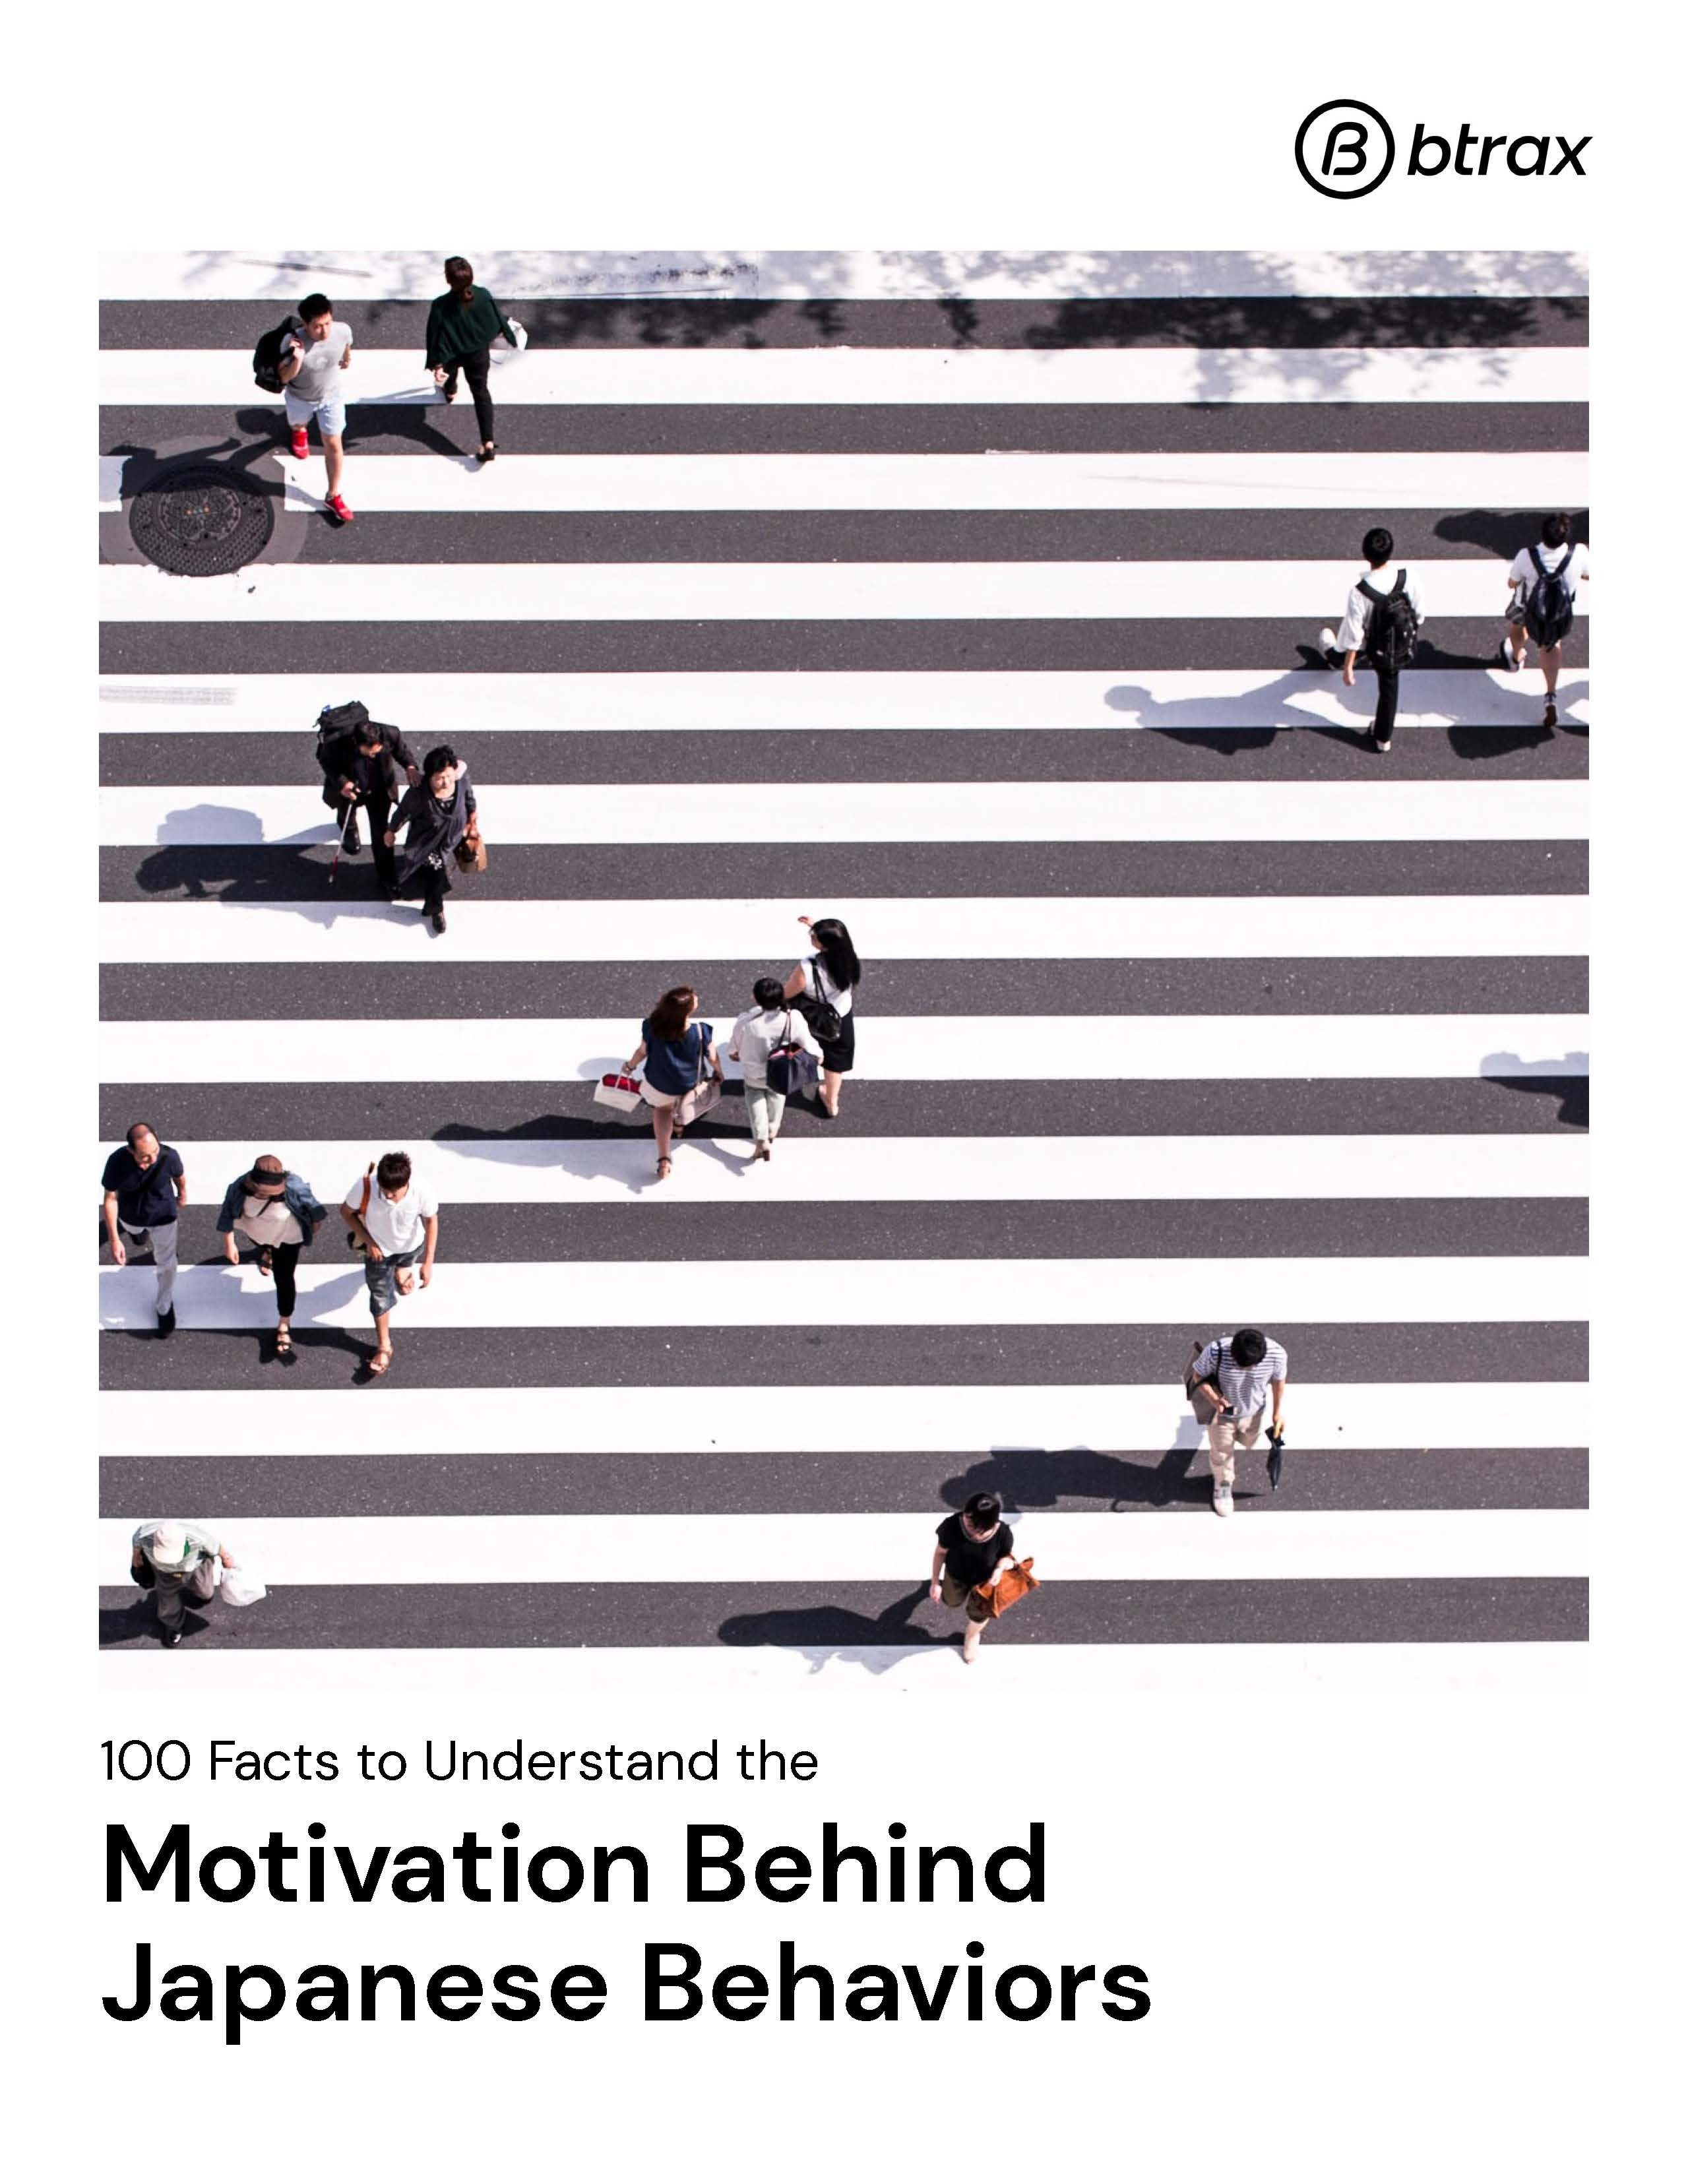 Download the free e-book about 100 facts on Japanese behaviors